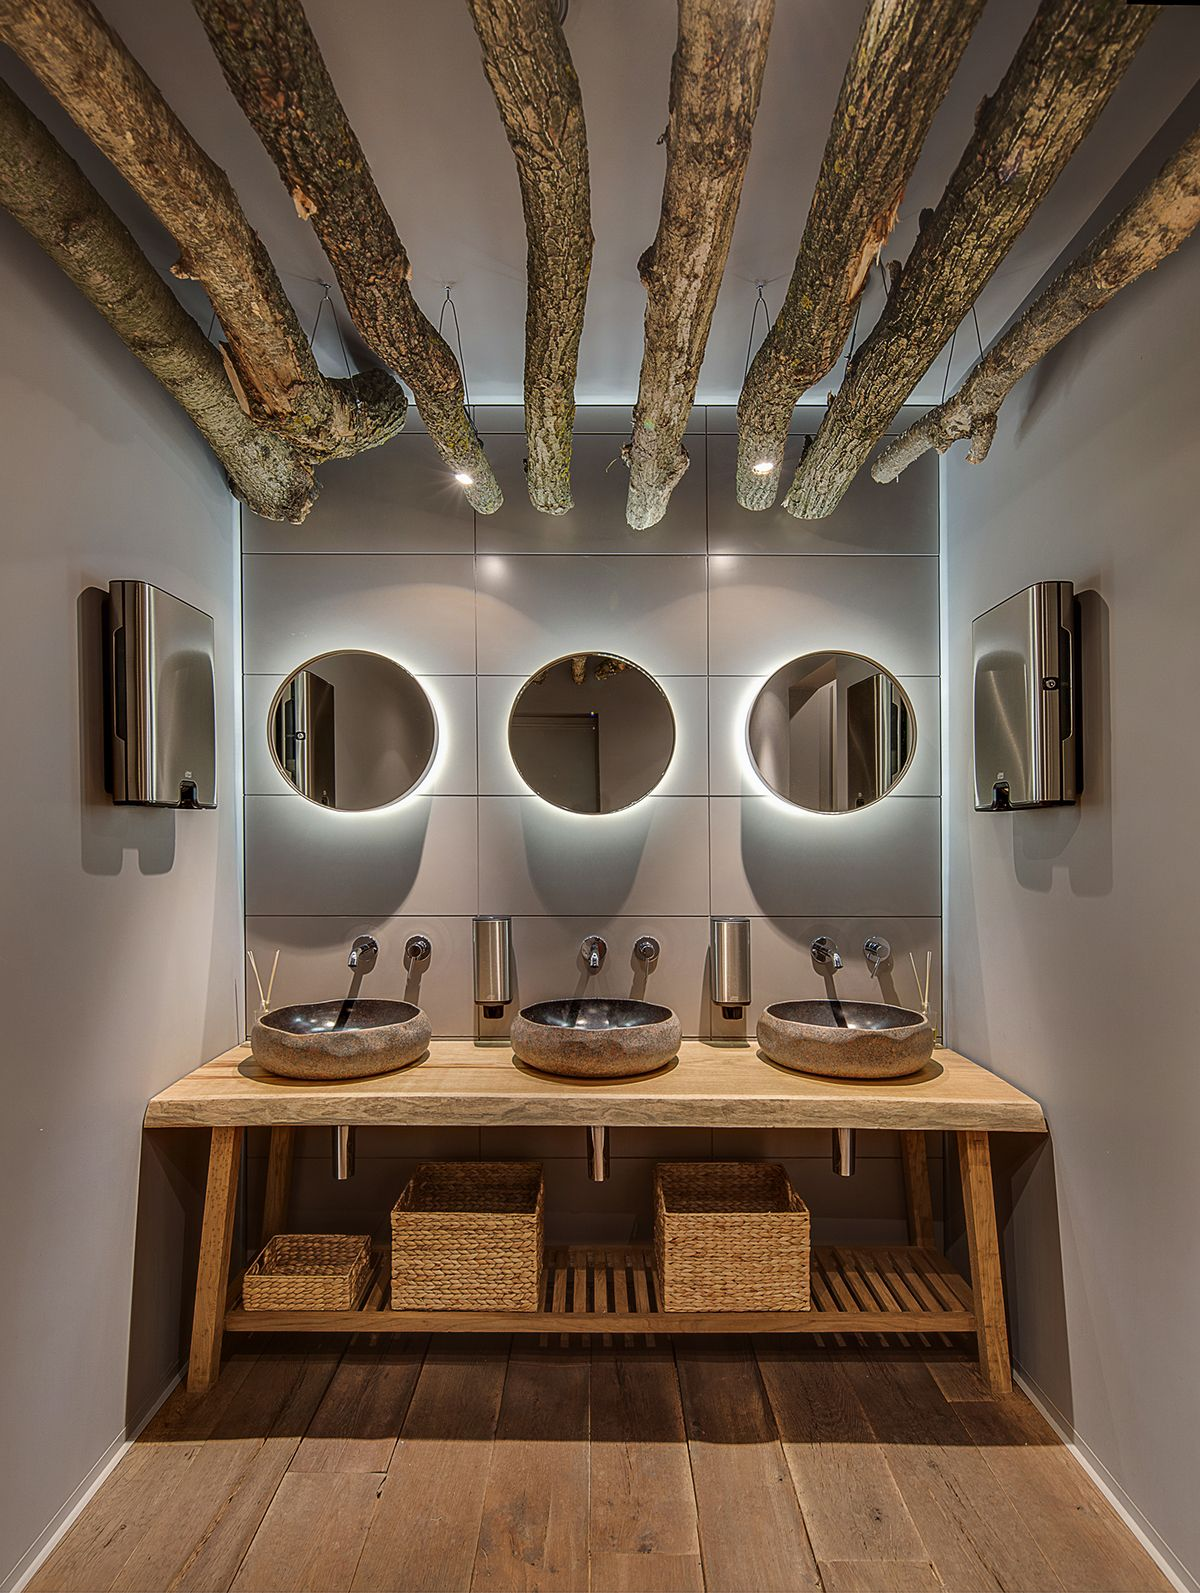 BARVY restaurant mixes warm wood with cool grey in their restroom